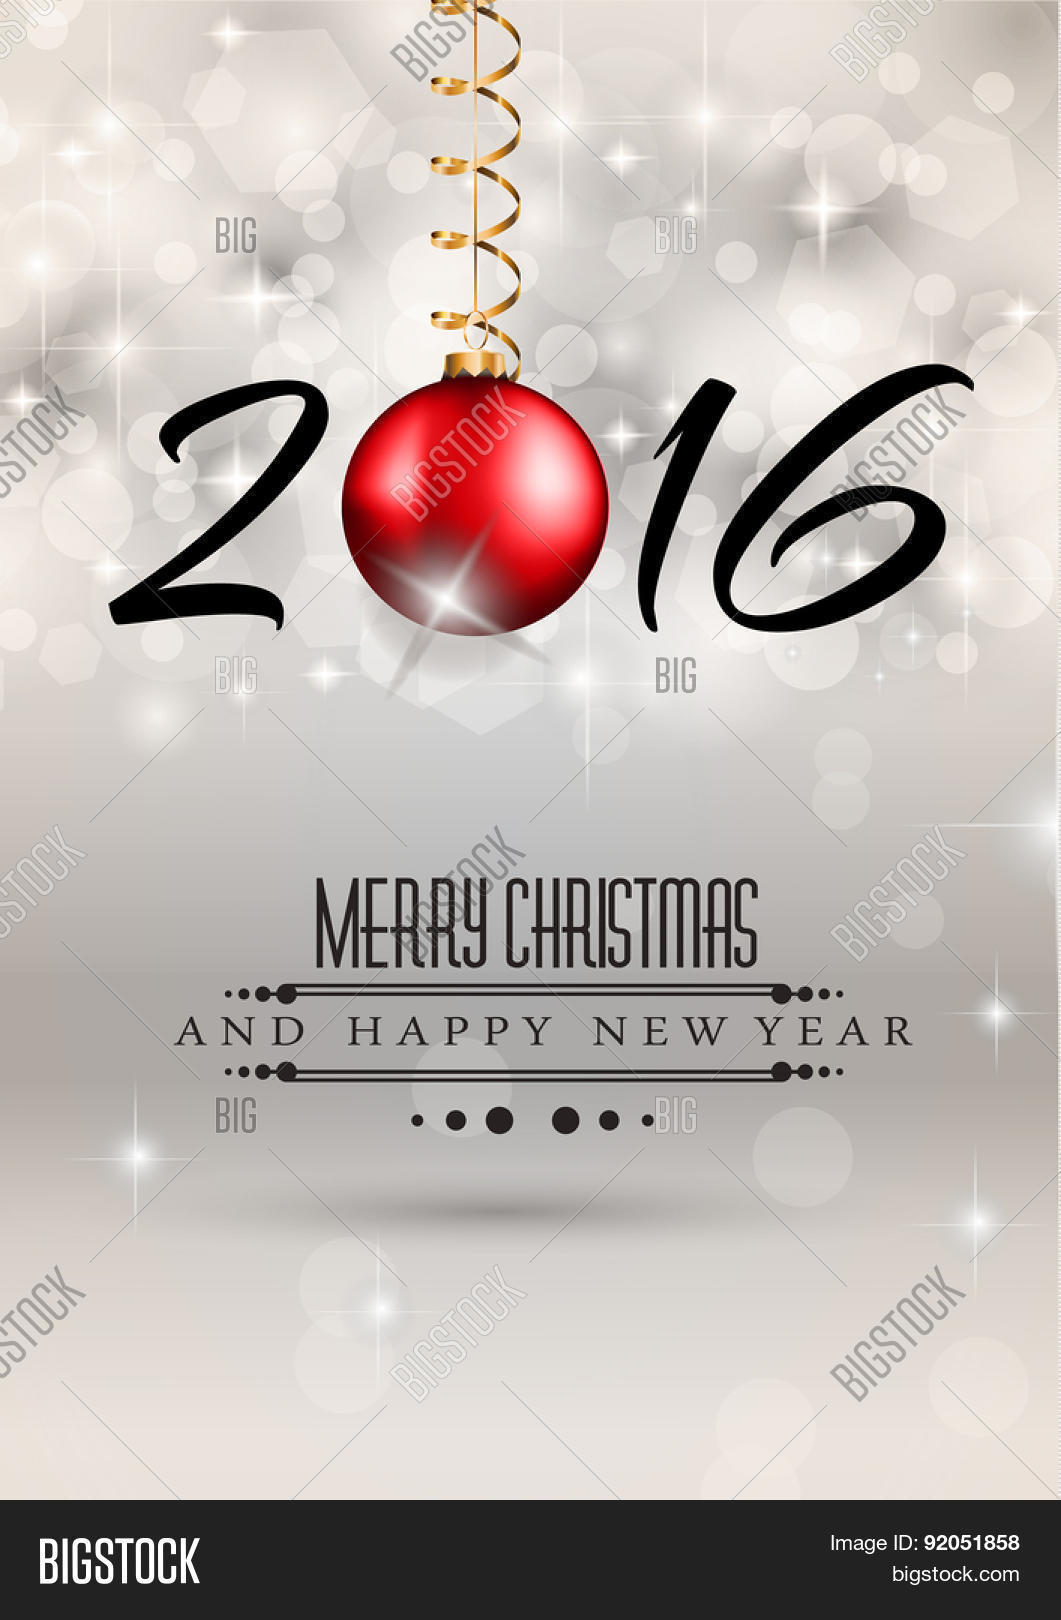 2016 merry chrstmas and happy new year background for your dinner invitations festive posters